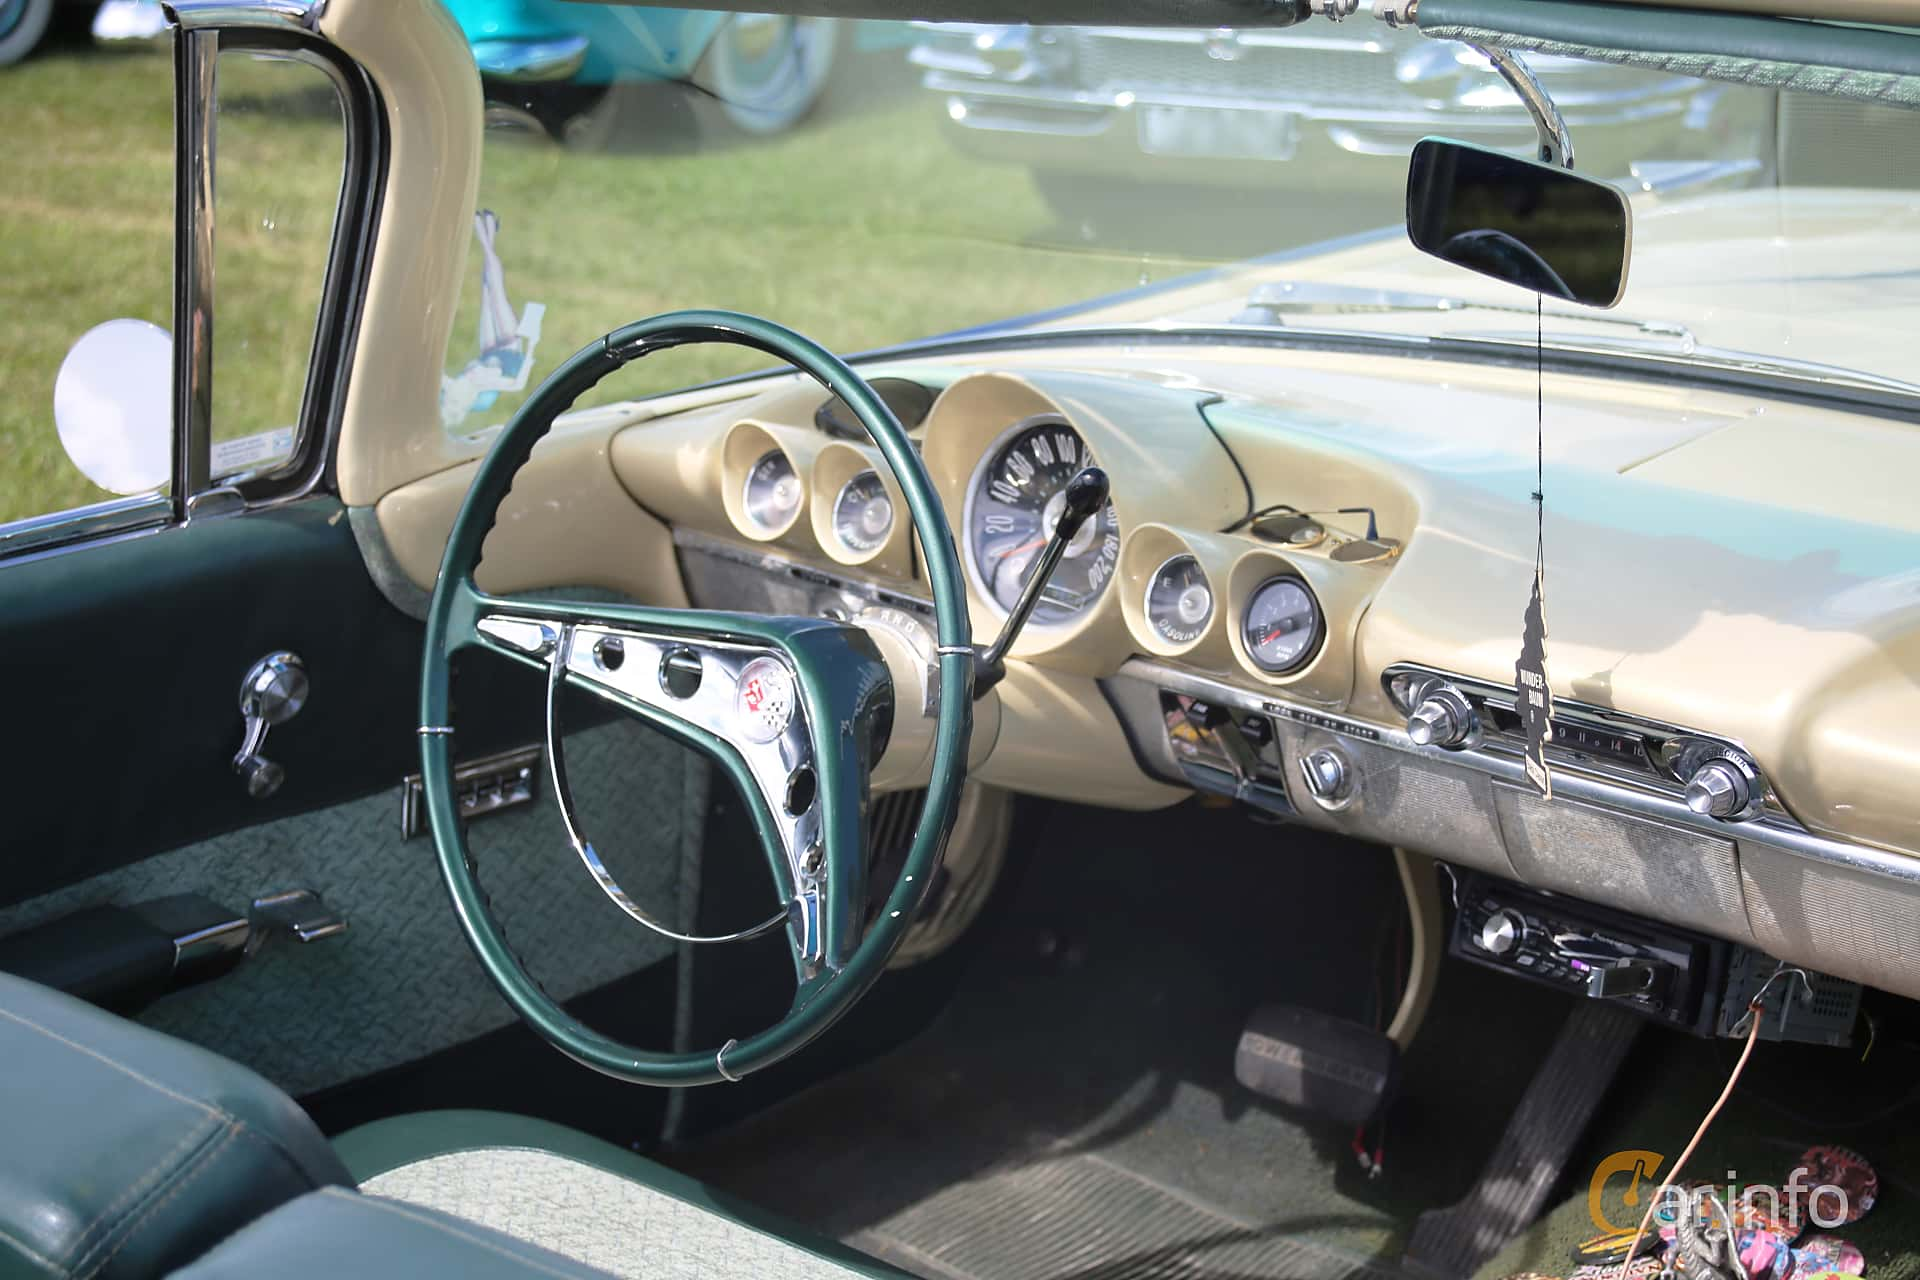 2 images of Chevrolet Impala Convertible 5 7 V8 Powerglide